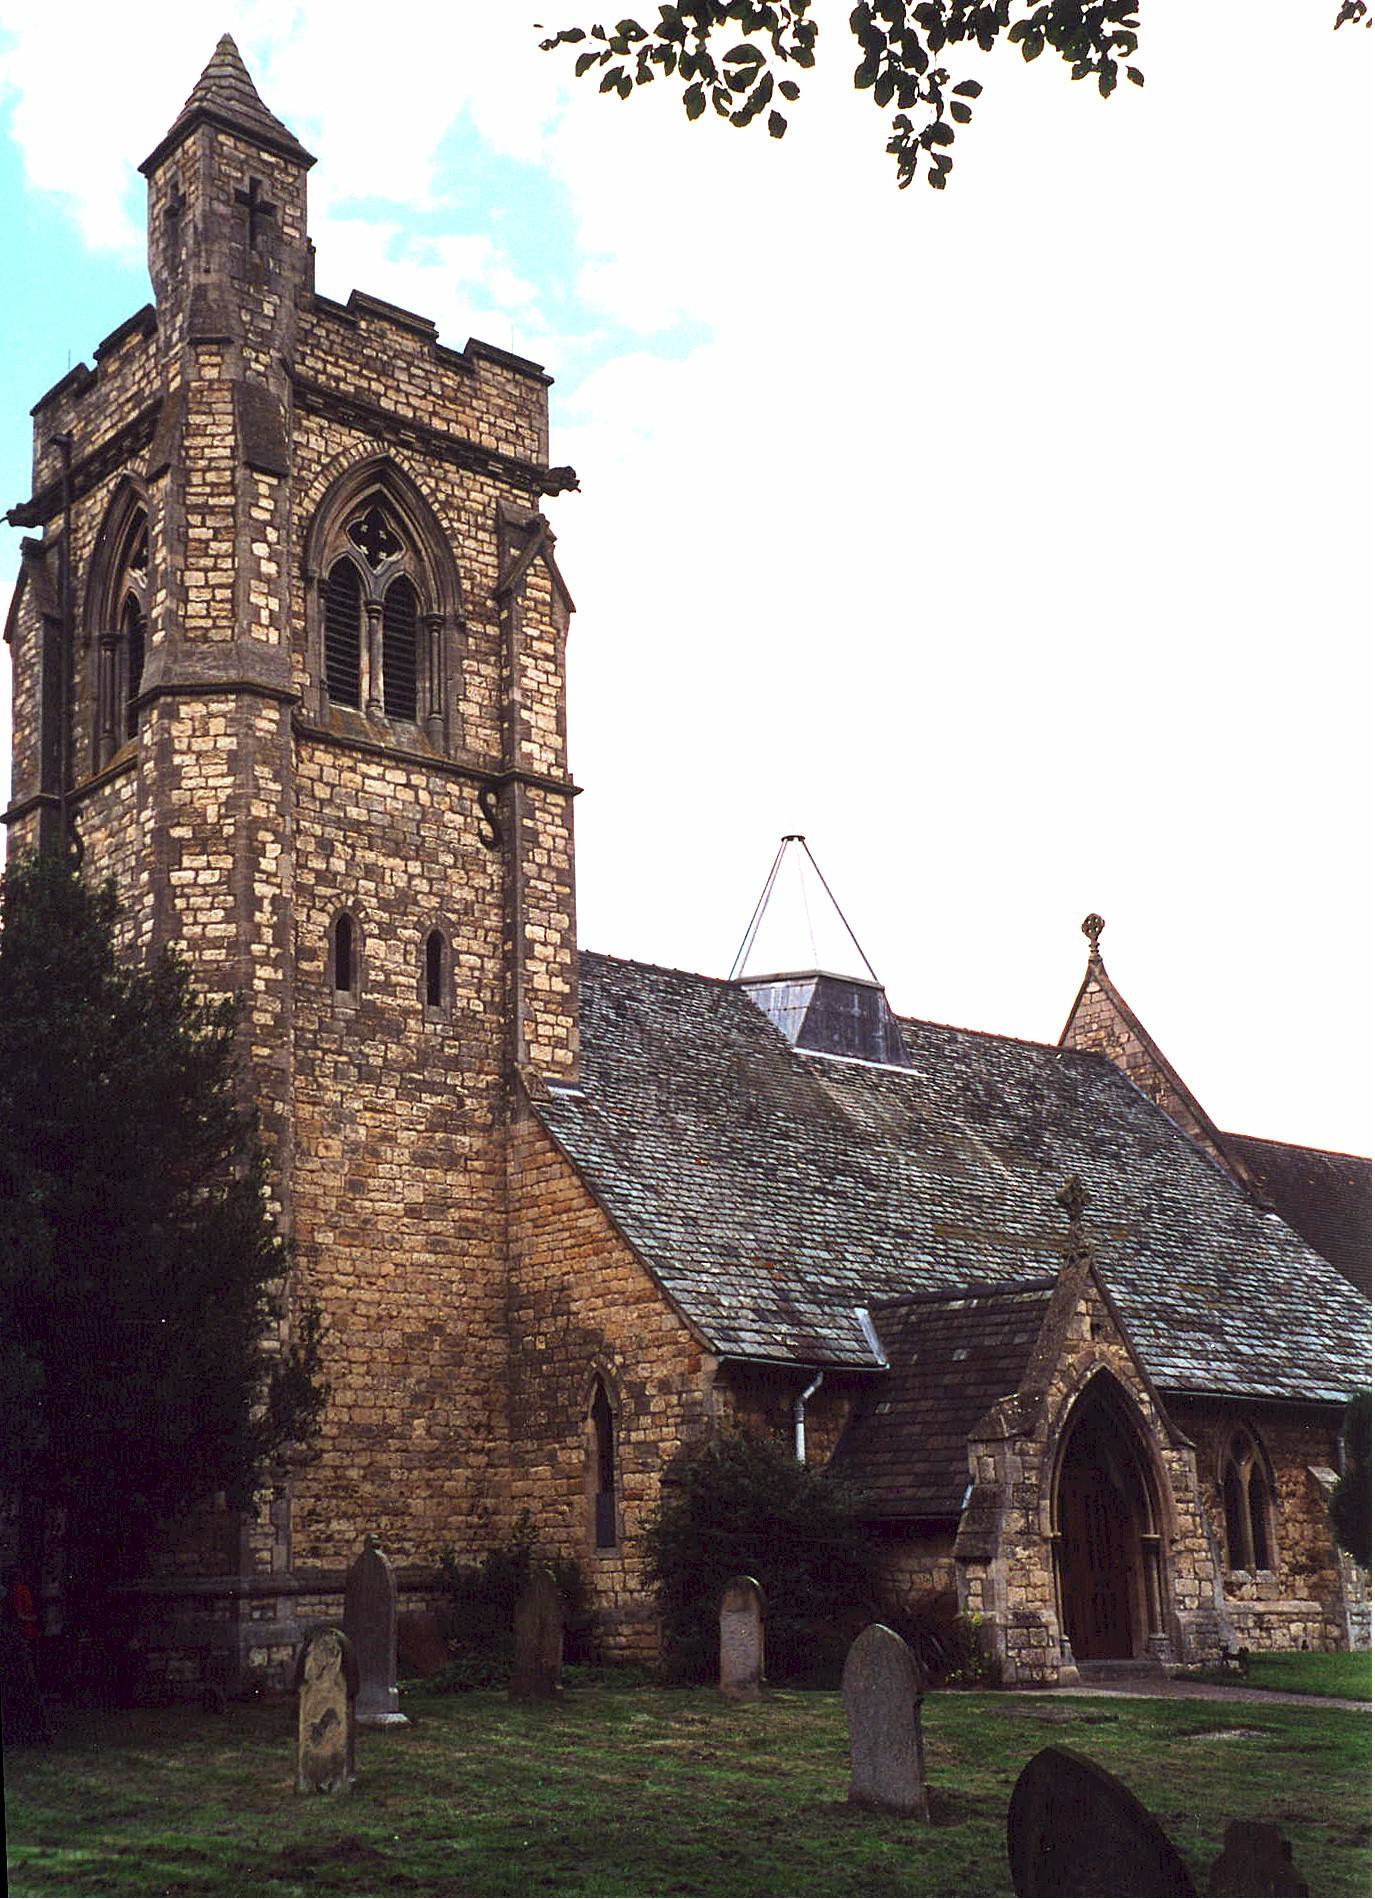 St. Lawrence parish church